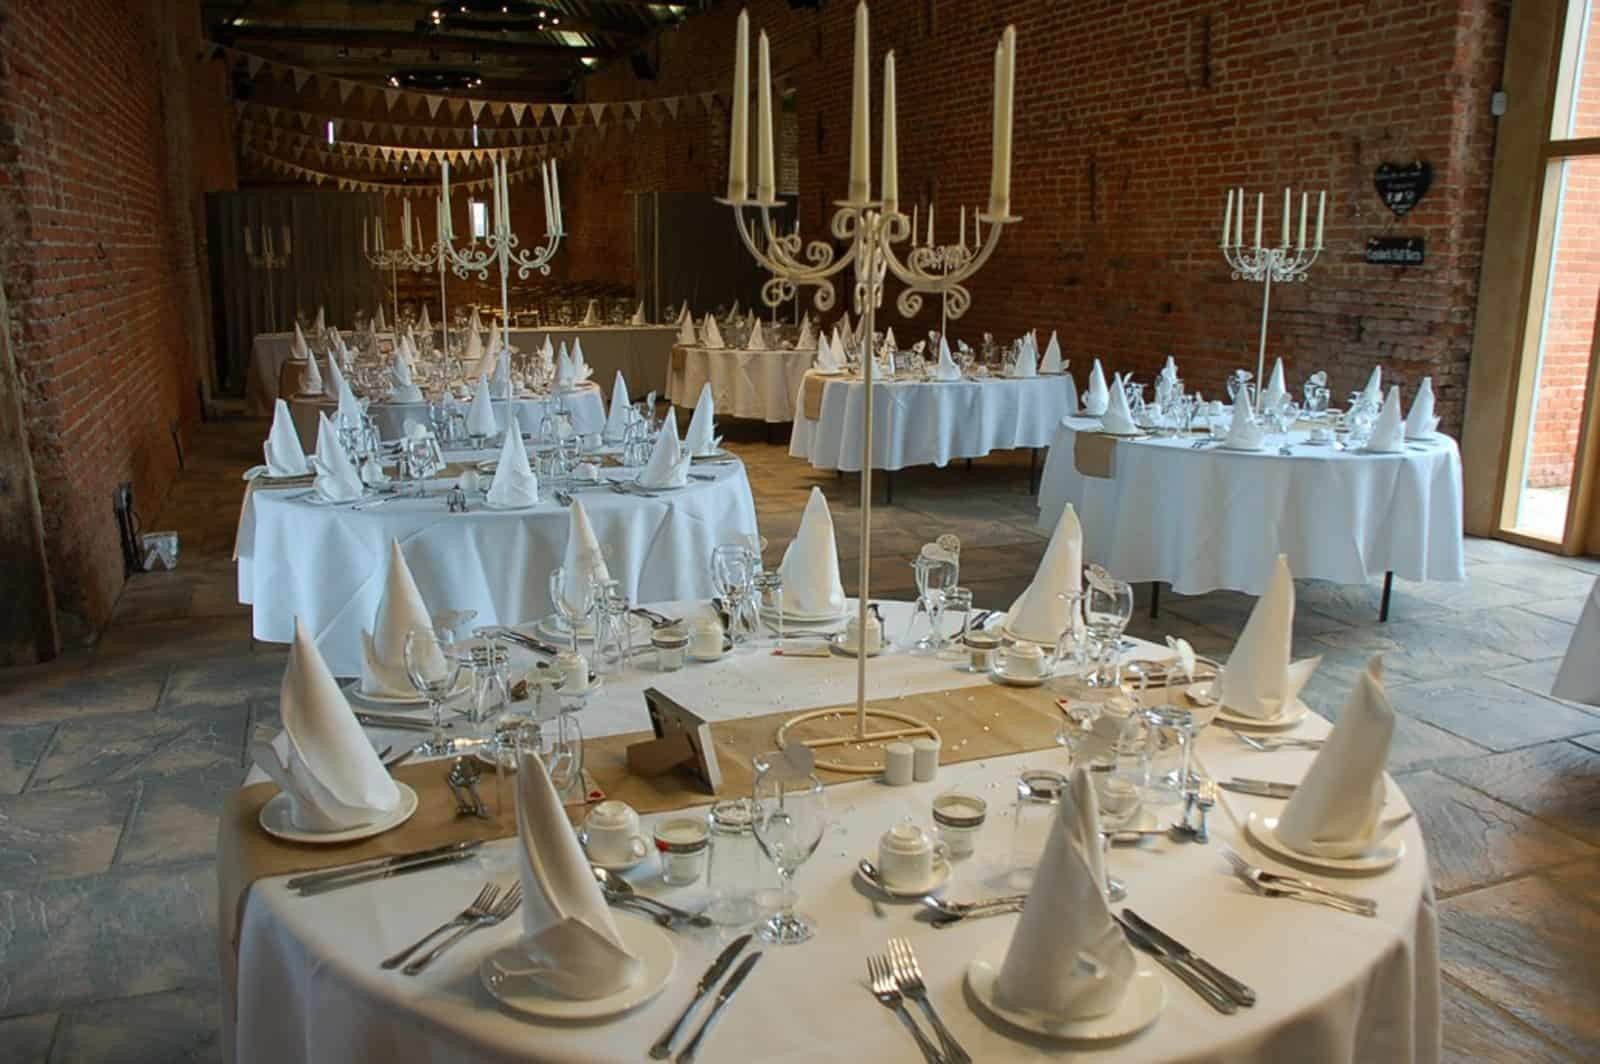 Candelabra decorated tables